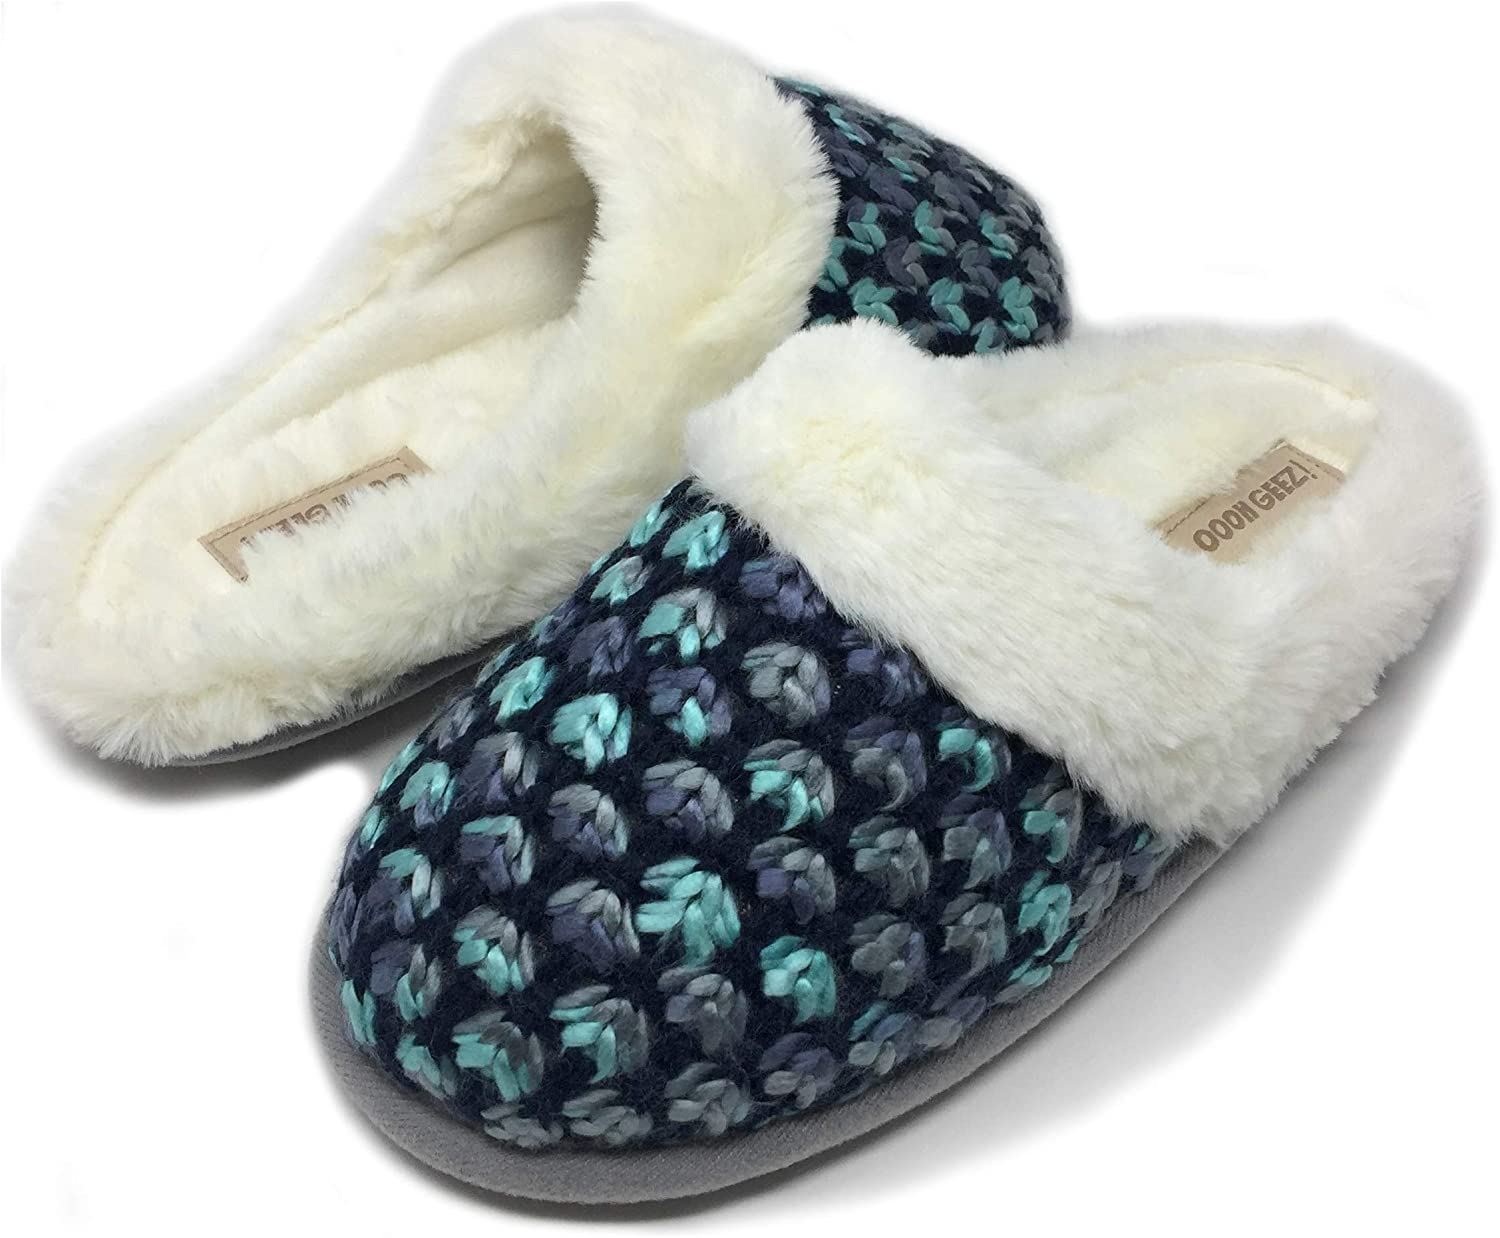 Women's Cozy Slippers, Oooh Yeah Sherpa Funny Fluffy Fuzzy Slippers, Slip-On Slippers, Comfy Soft House Slippers